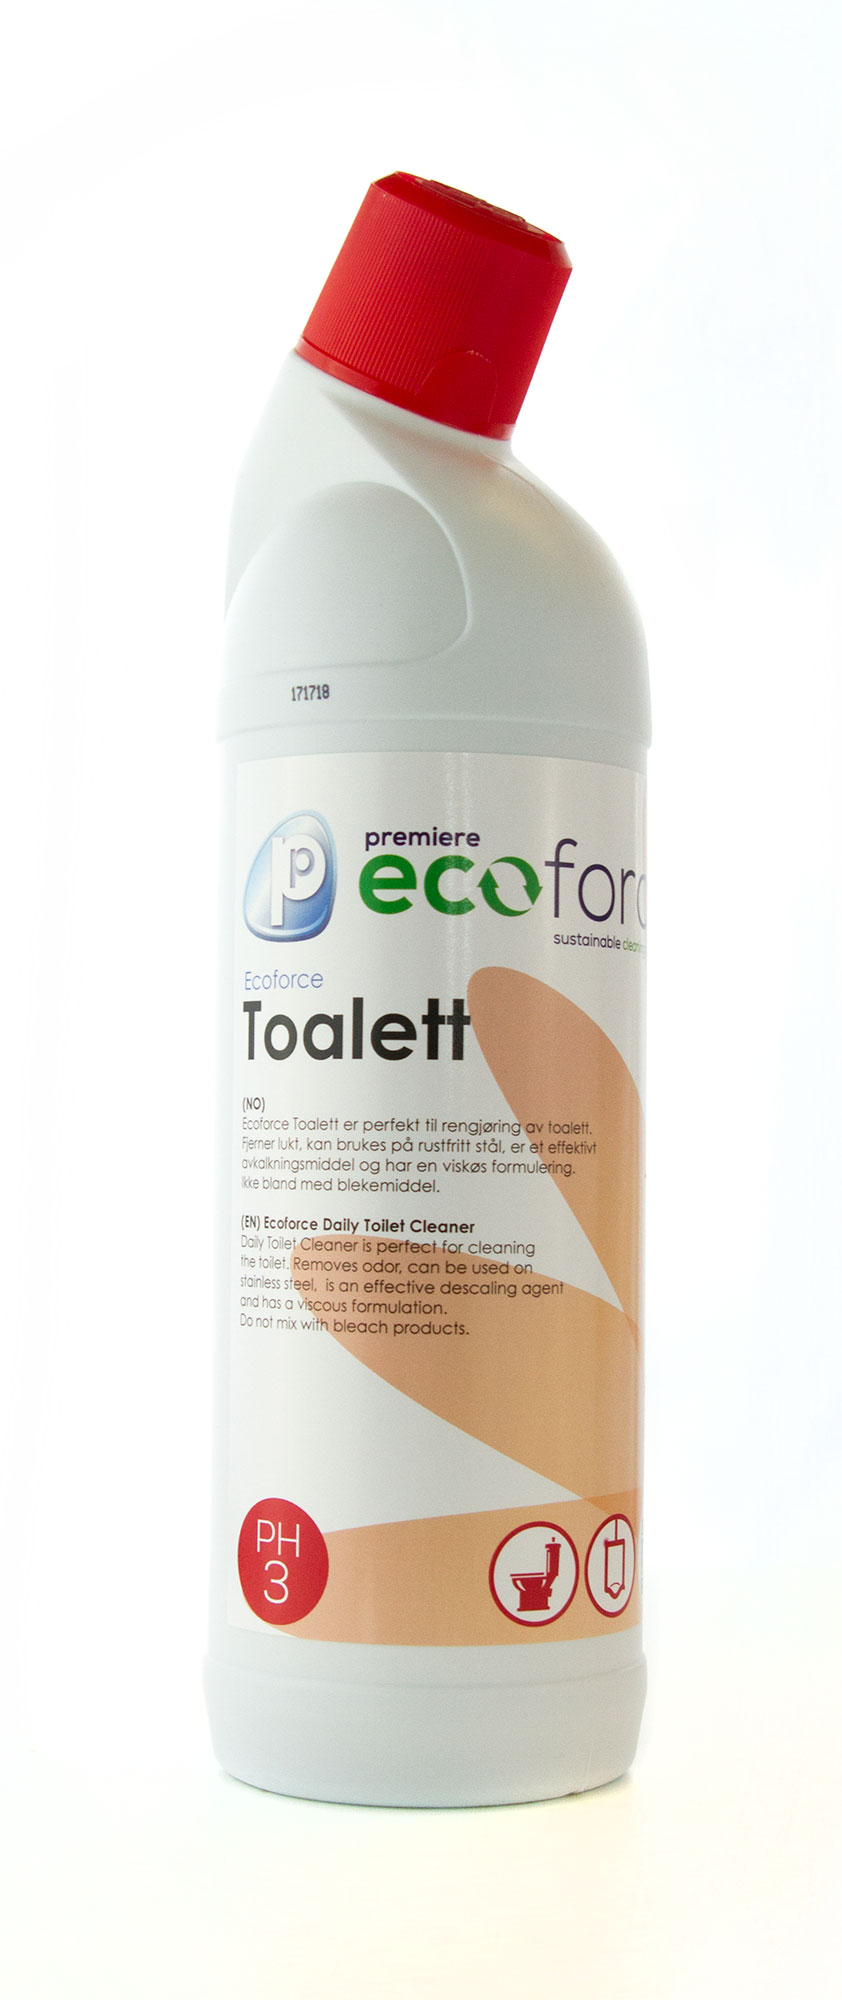 Ecoforce Toalett Daily toilet cleaner   * fl a 1 lt